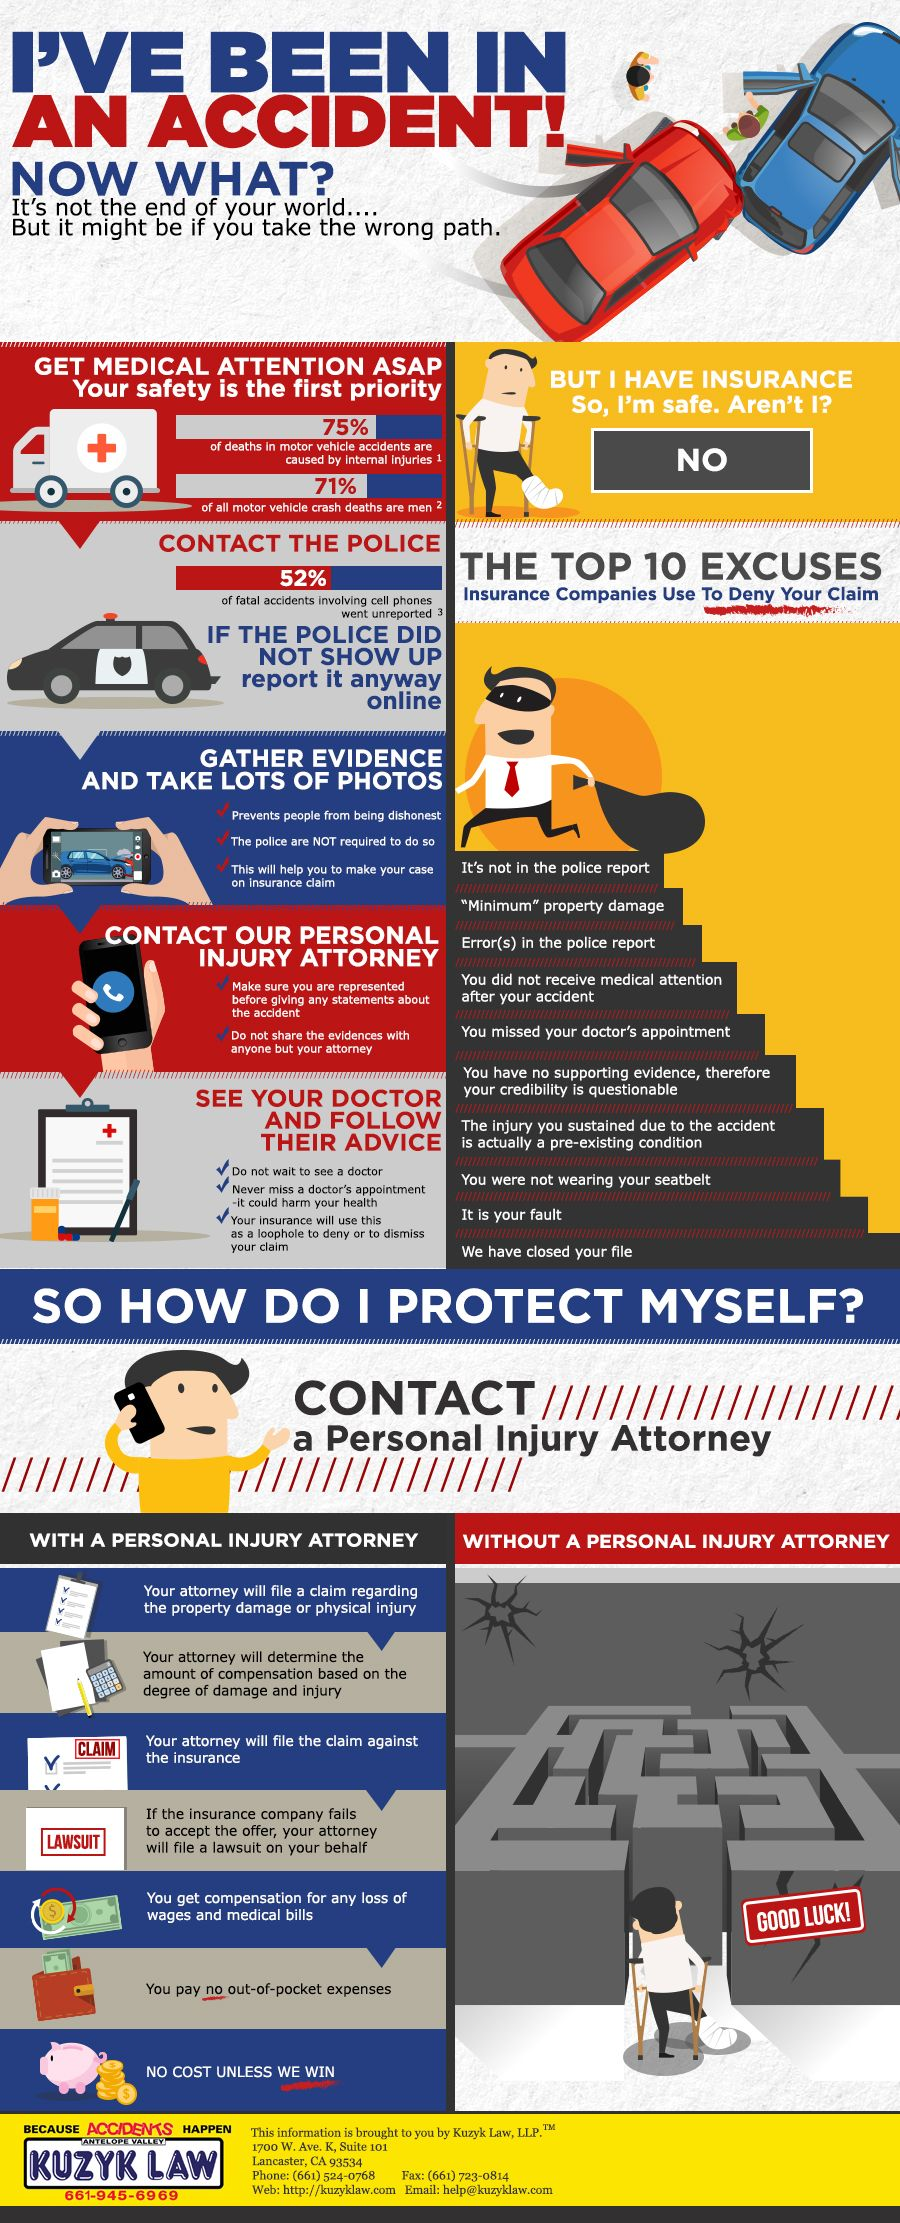 I Have Been in an Accident! Now What? #Infographic